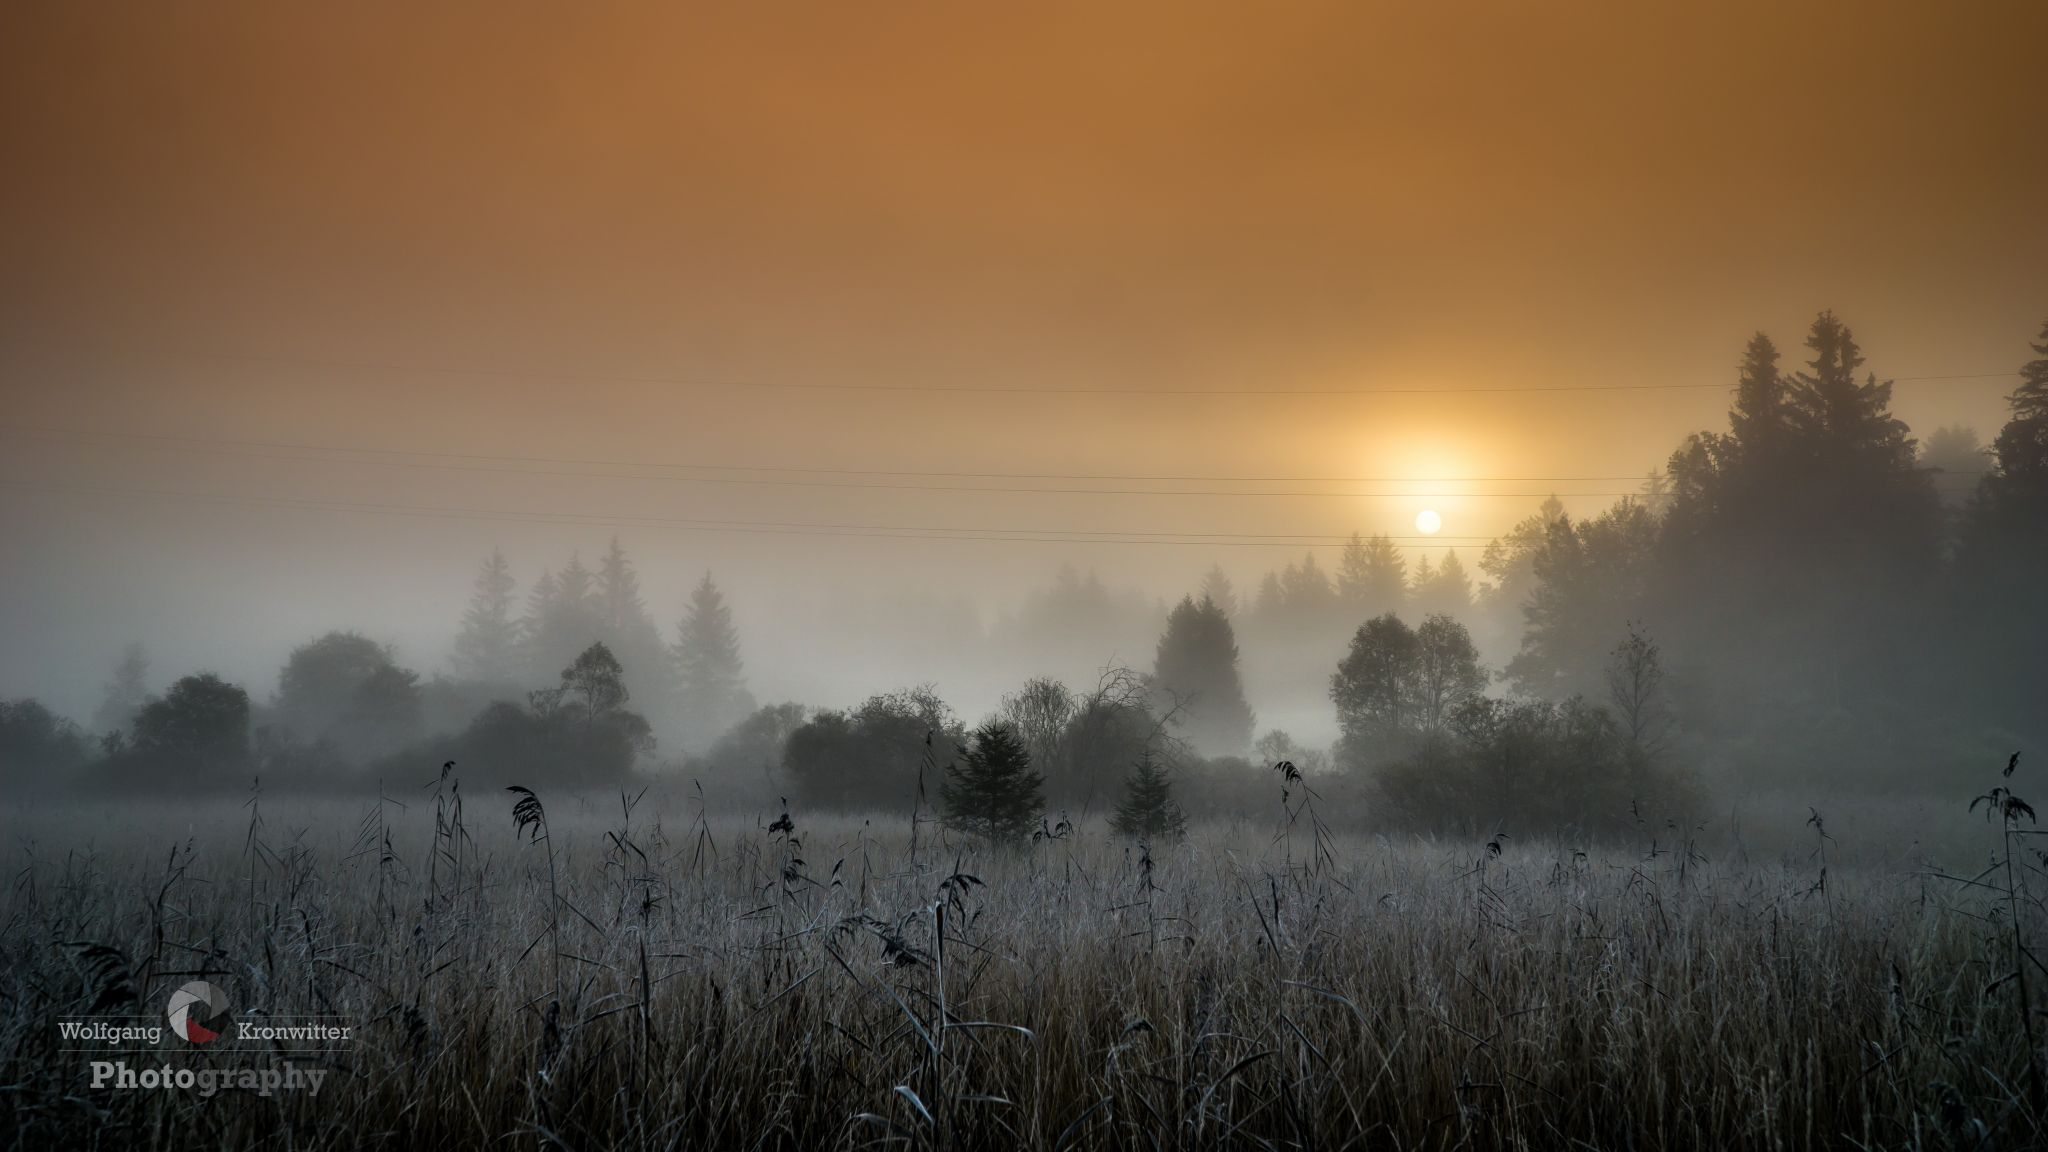 Morning sun behind the fog, Germany